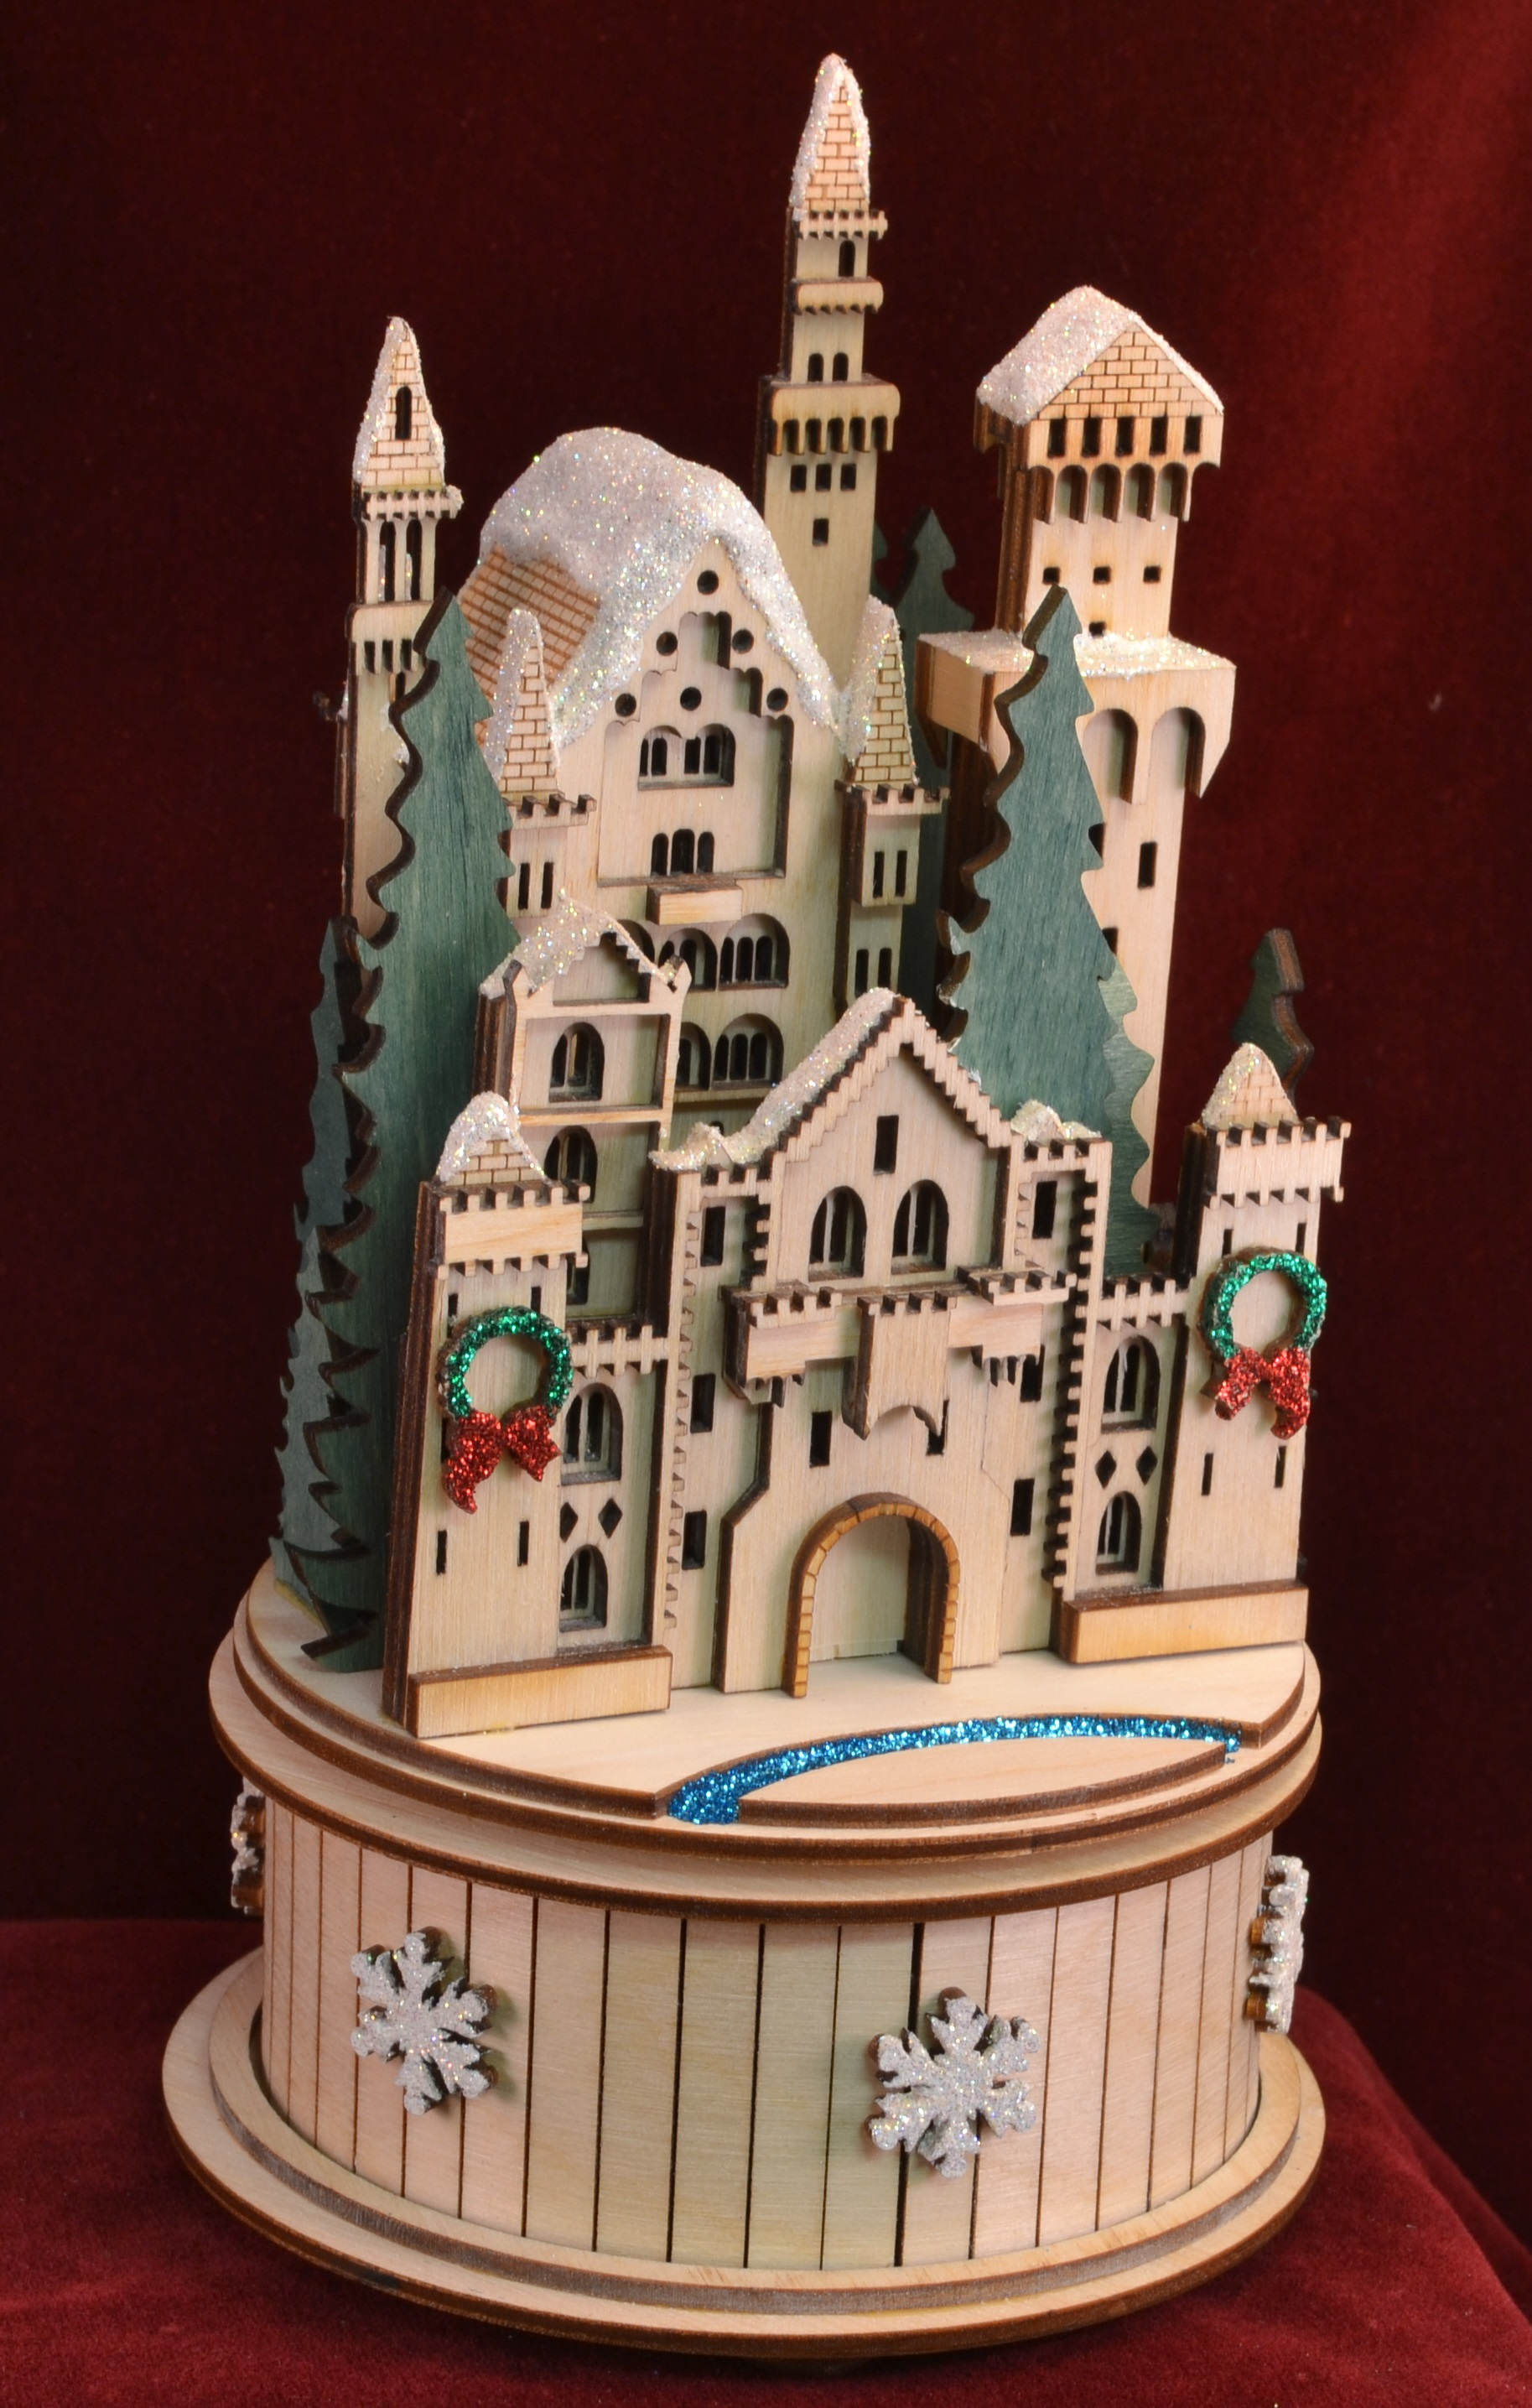 Snow Queen's Castle Music Box